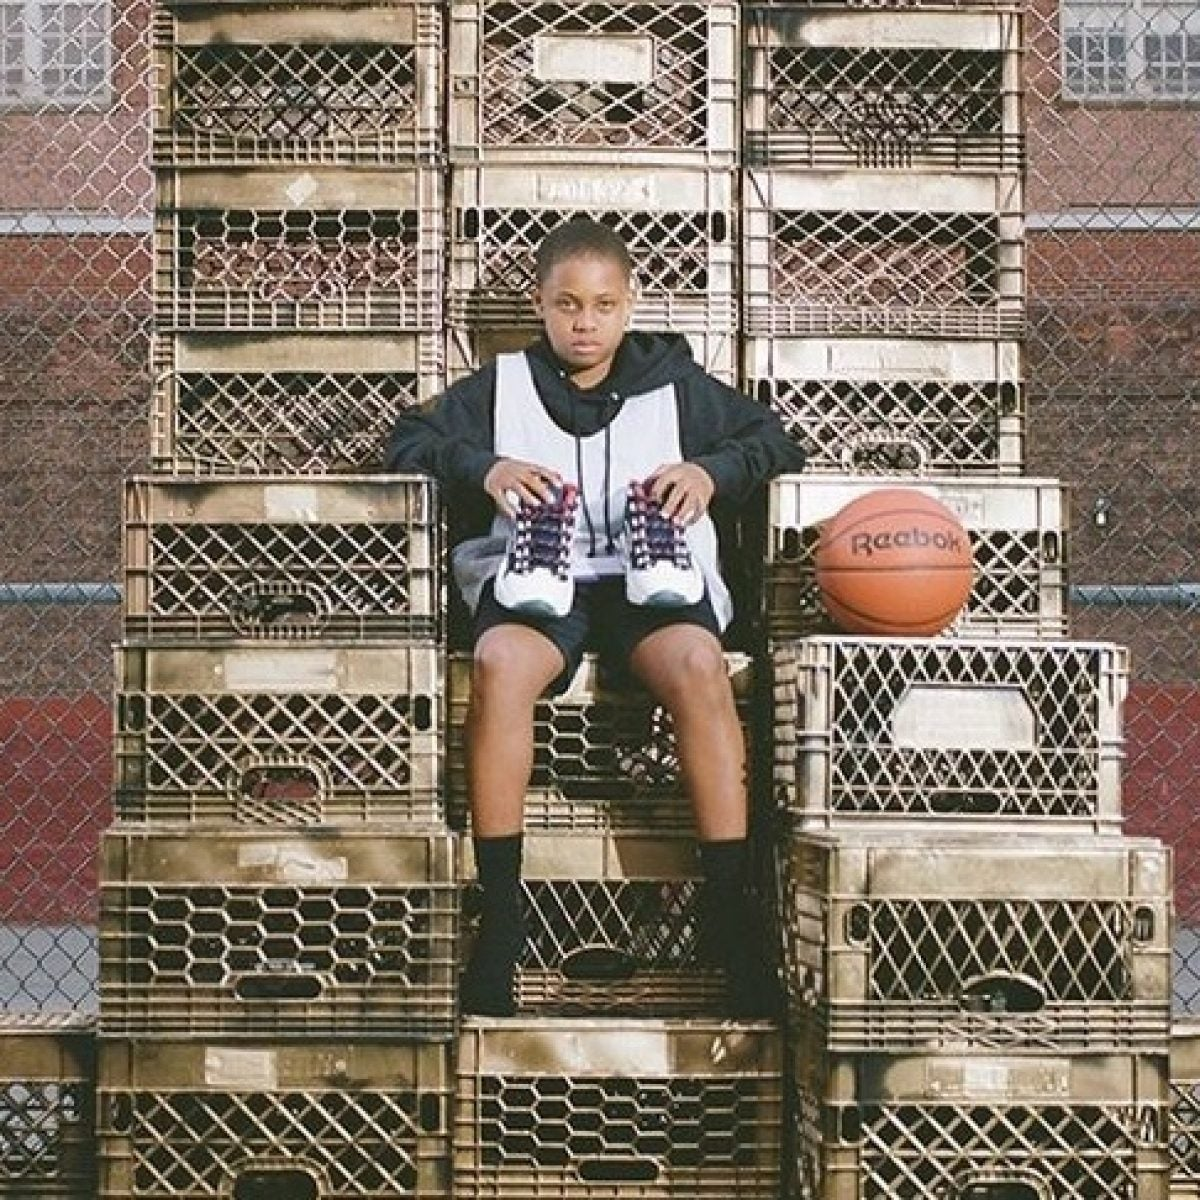 Kerby Jean-Raymond Collaborates With Reebok To Create Short Film, 'CrateMaster'